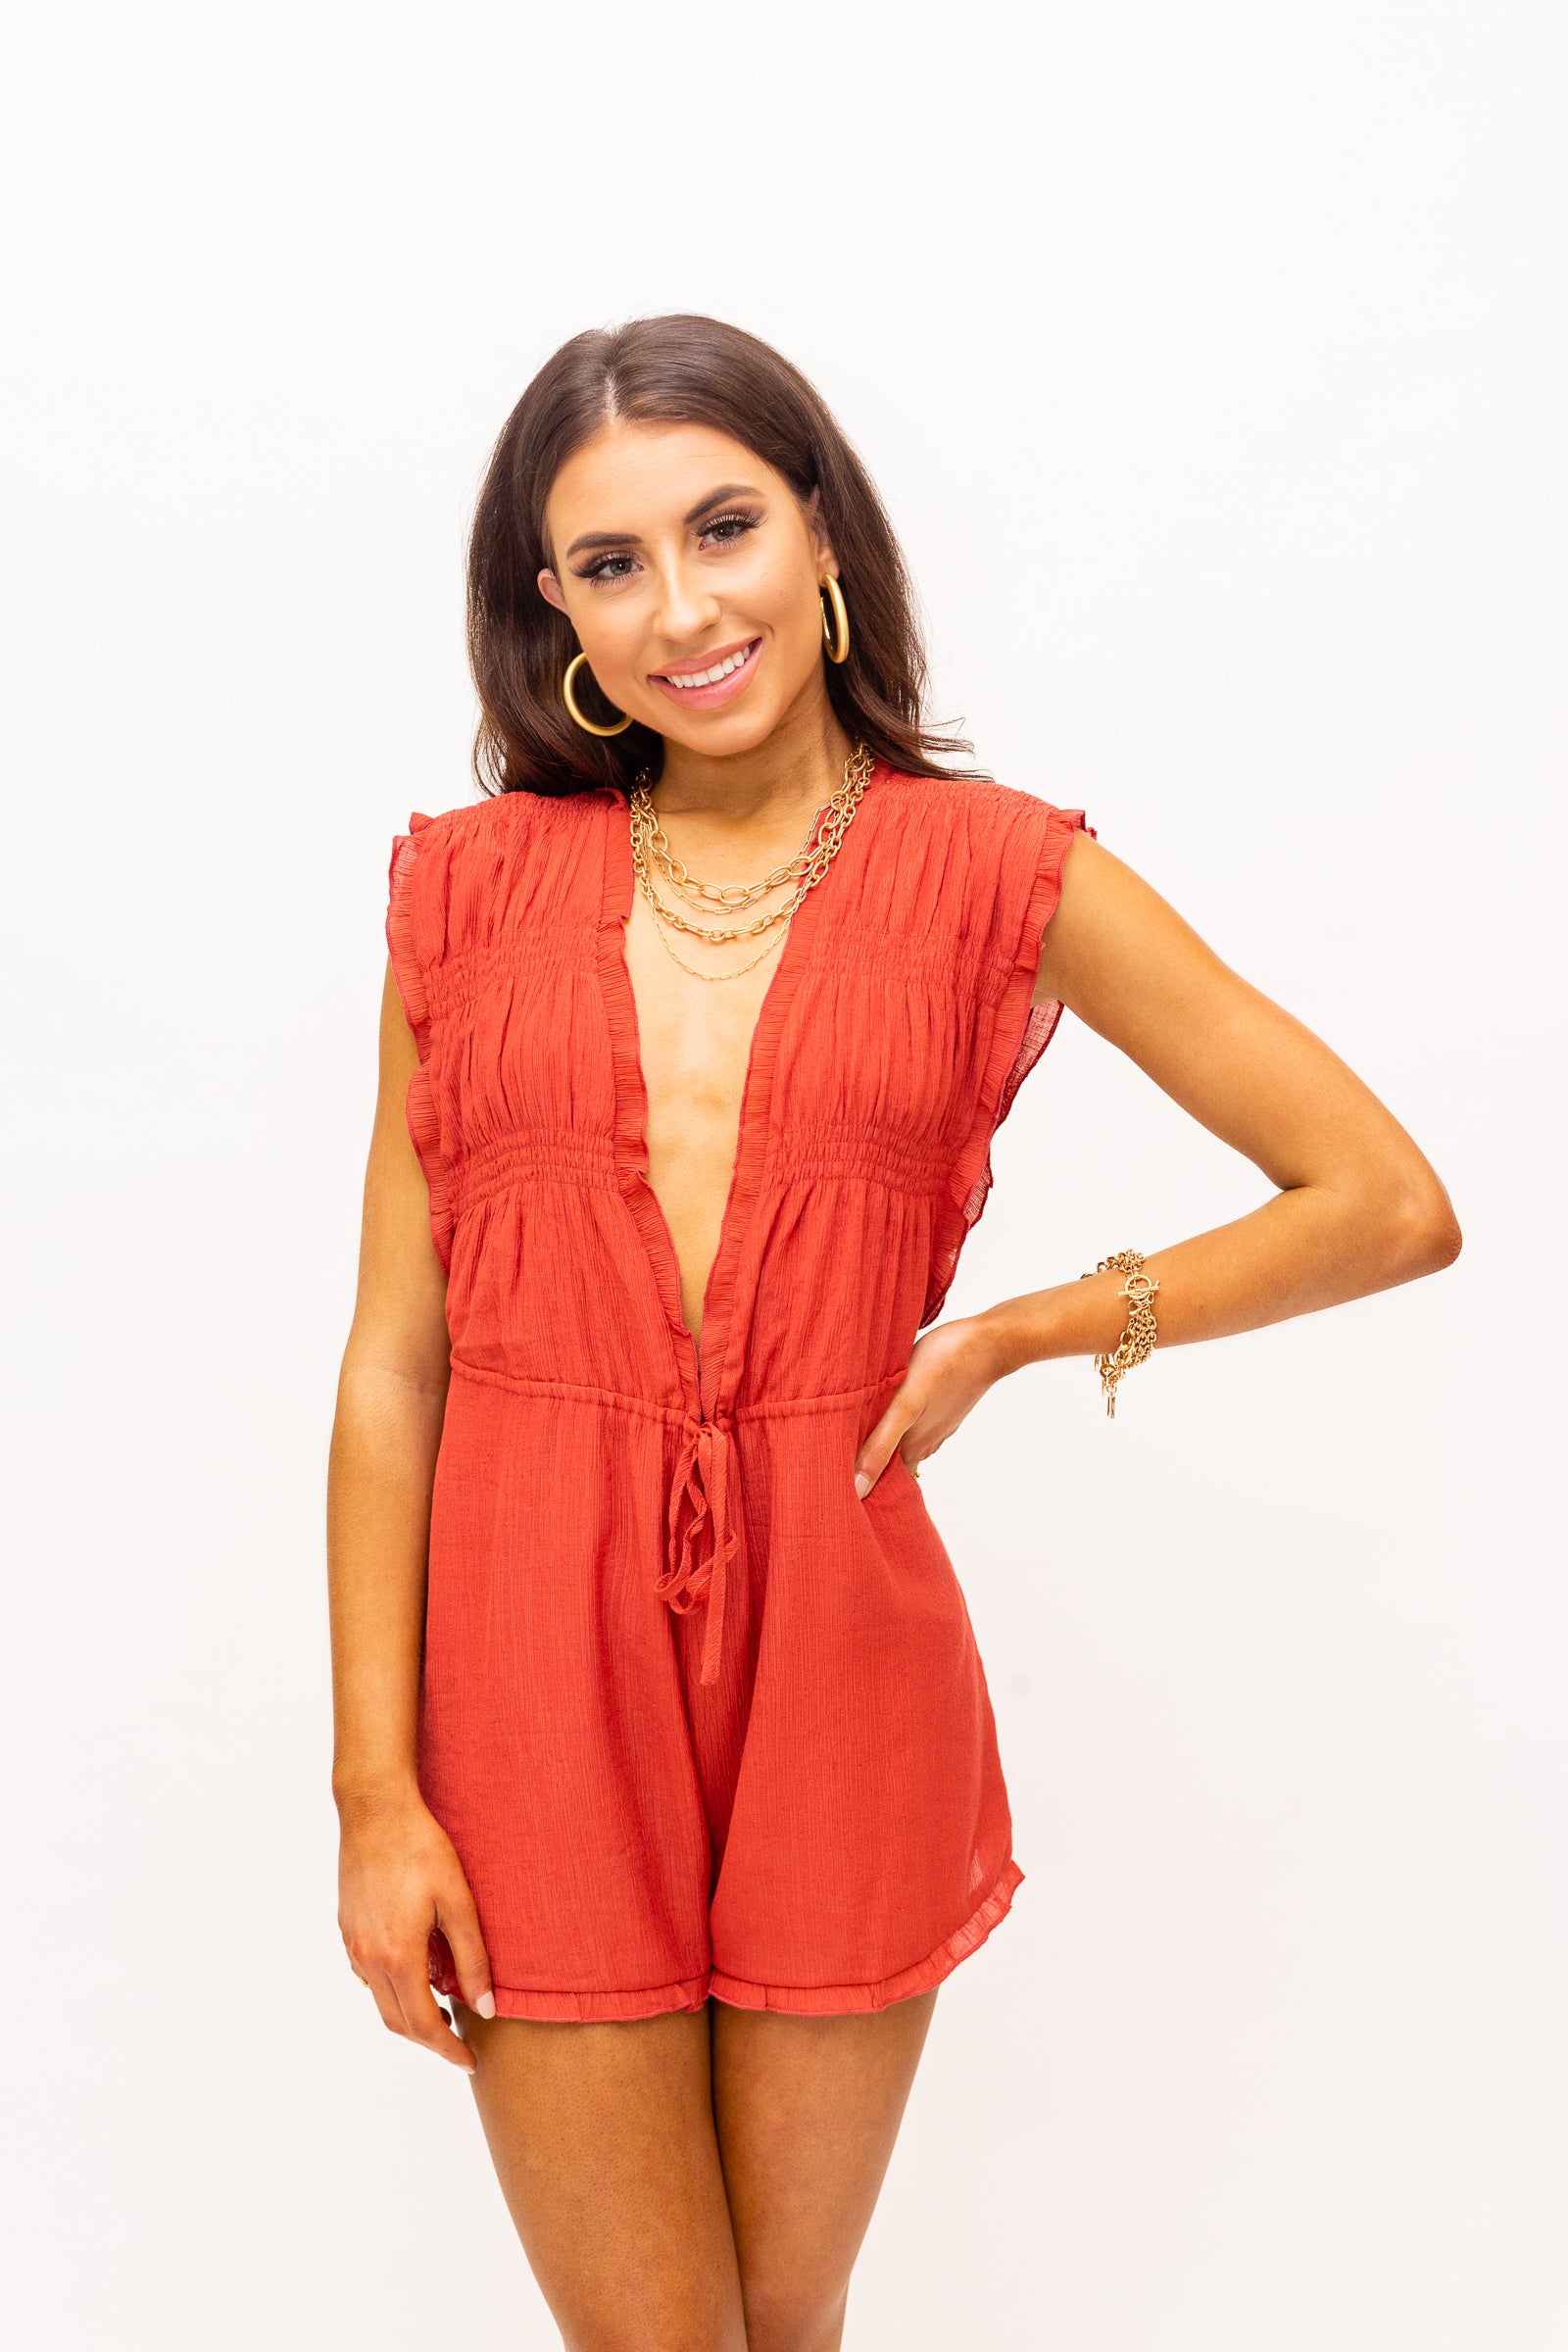 Thick ruffle straps attach to a plunging v-neckline with an oversized smocked bodice before meeting a drawstring waist and flow into comfortable and relaxed shorts with a ruffle hem at the bottom.